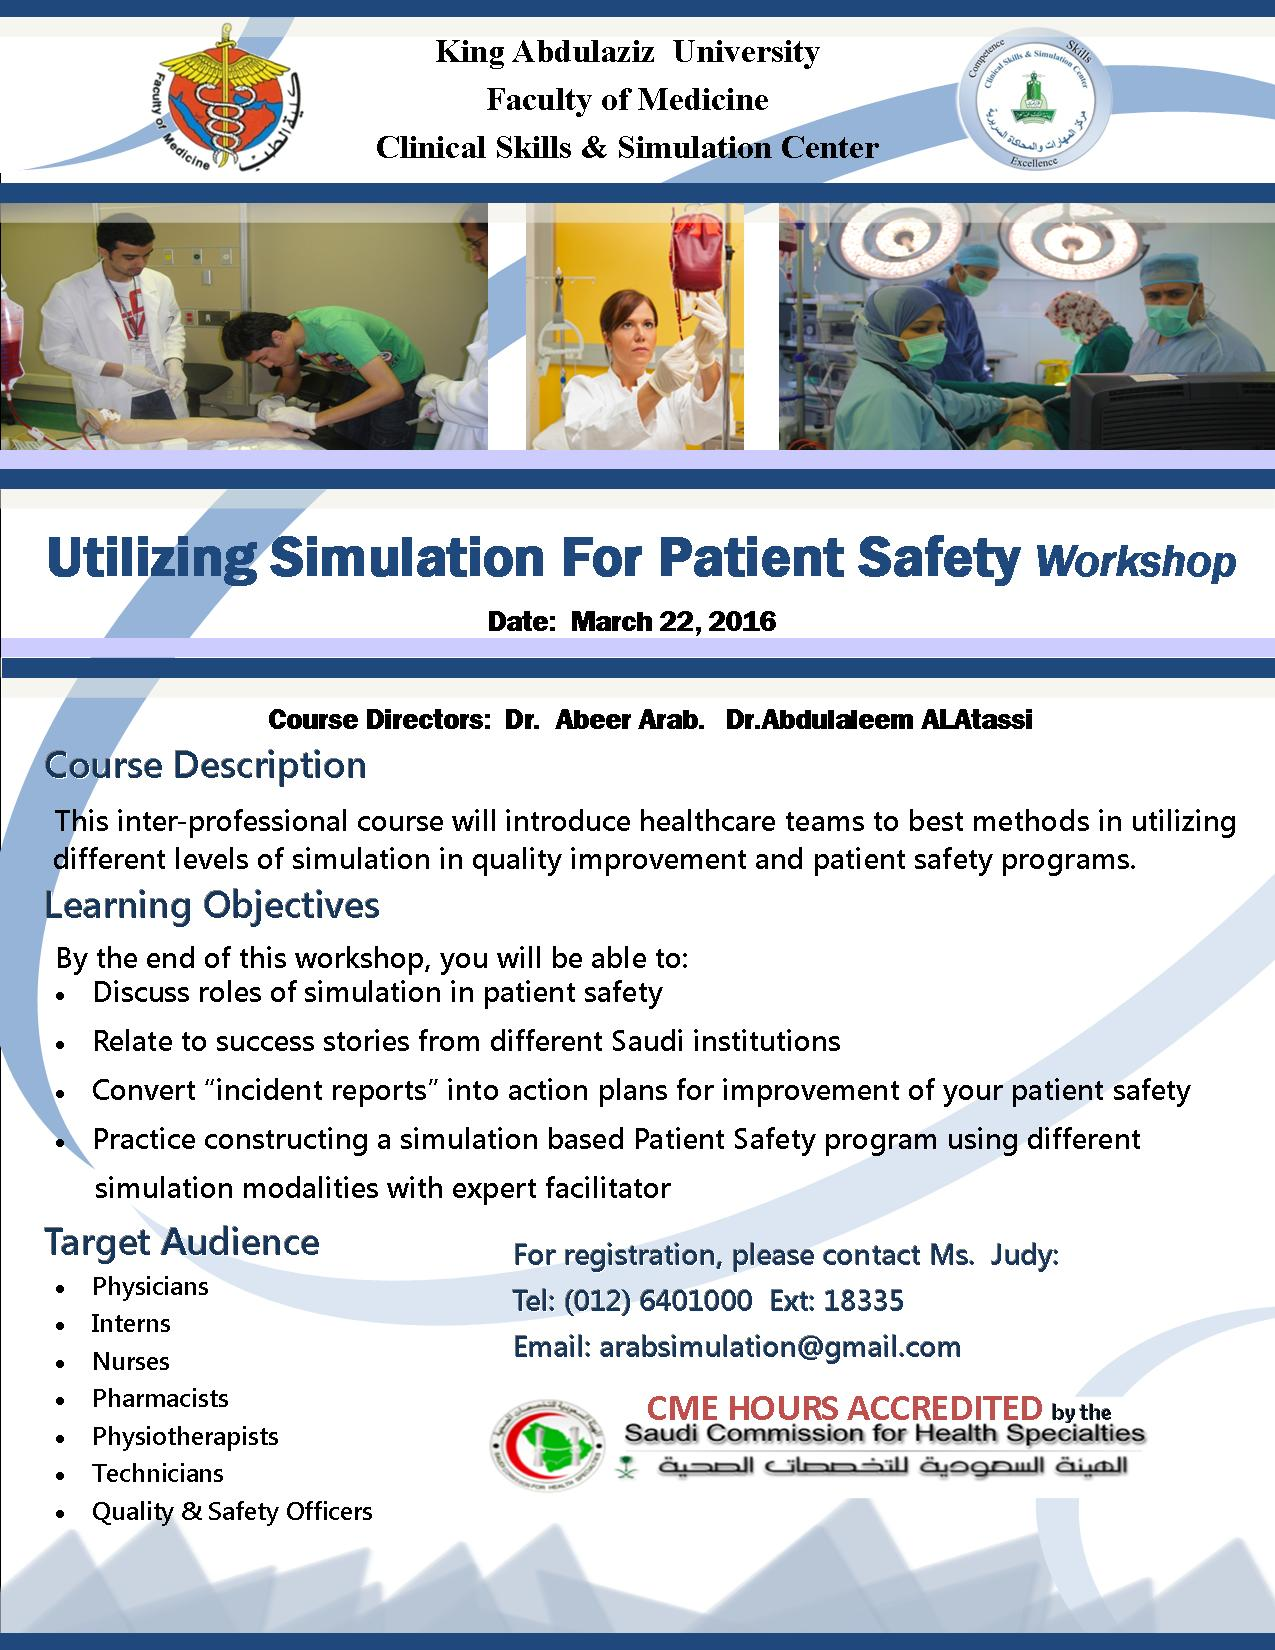 Utilizing Simulation for Patient Safety Flyer